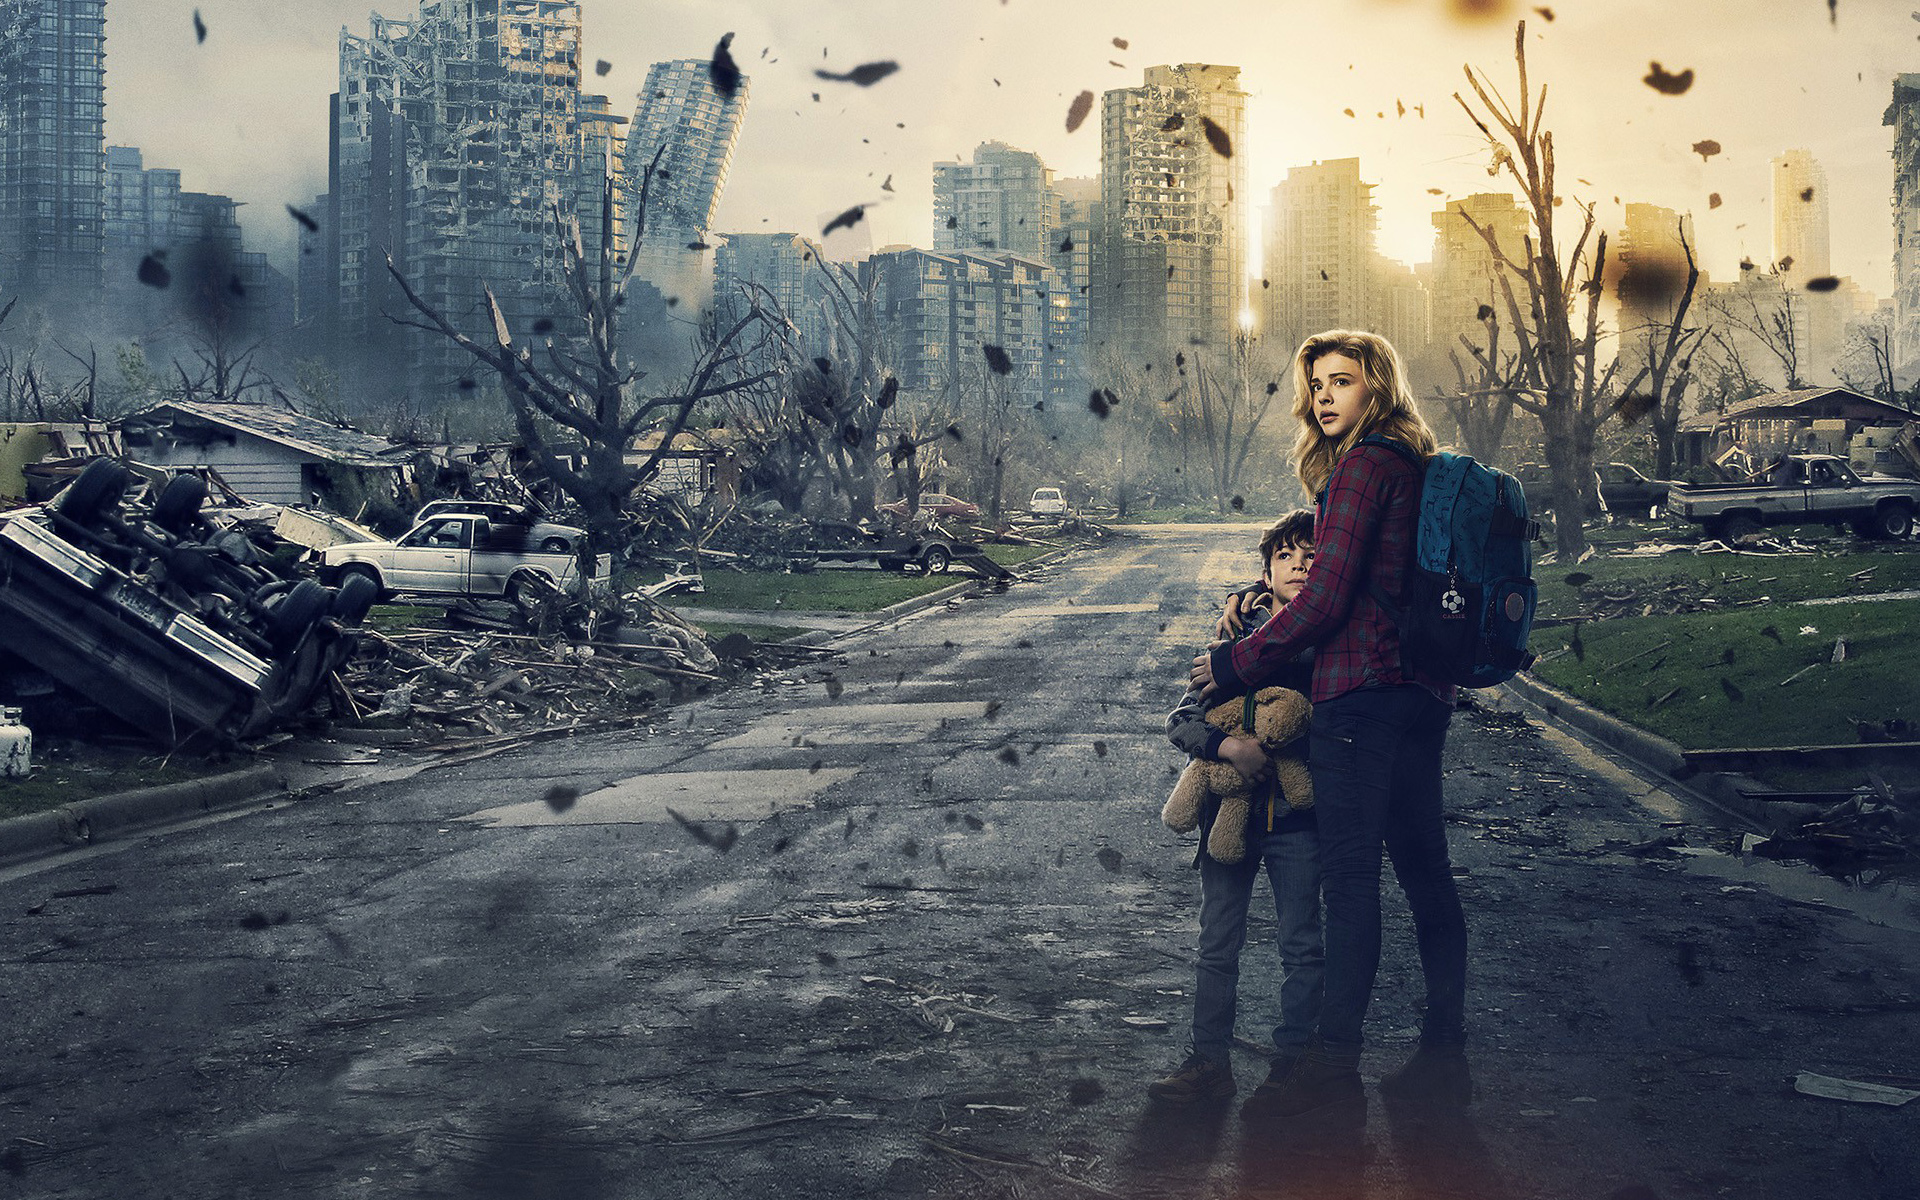 5 Hd The 5th Wave Movie Wallpapers